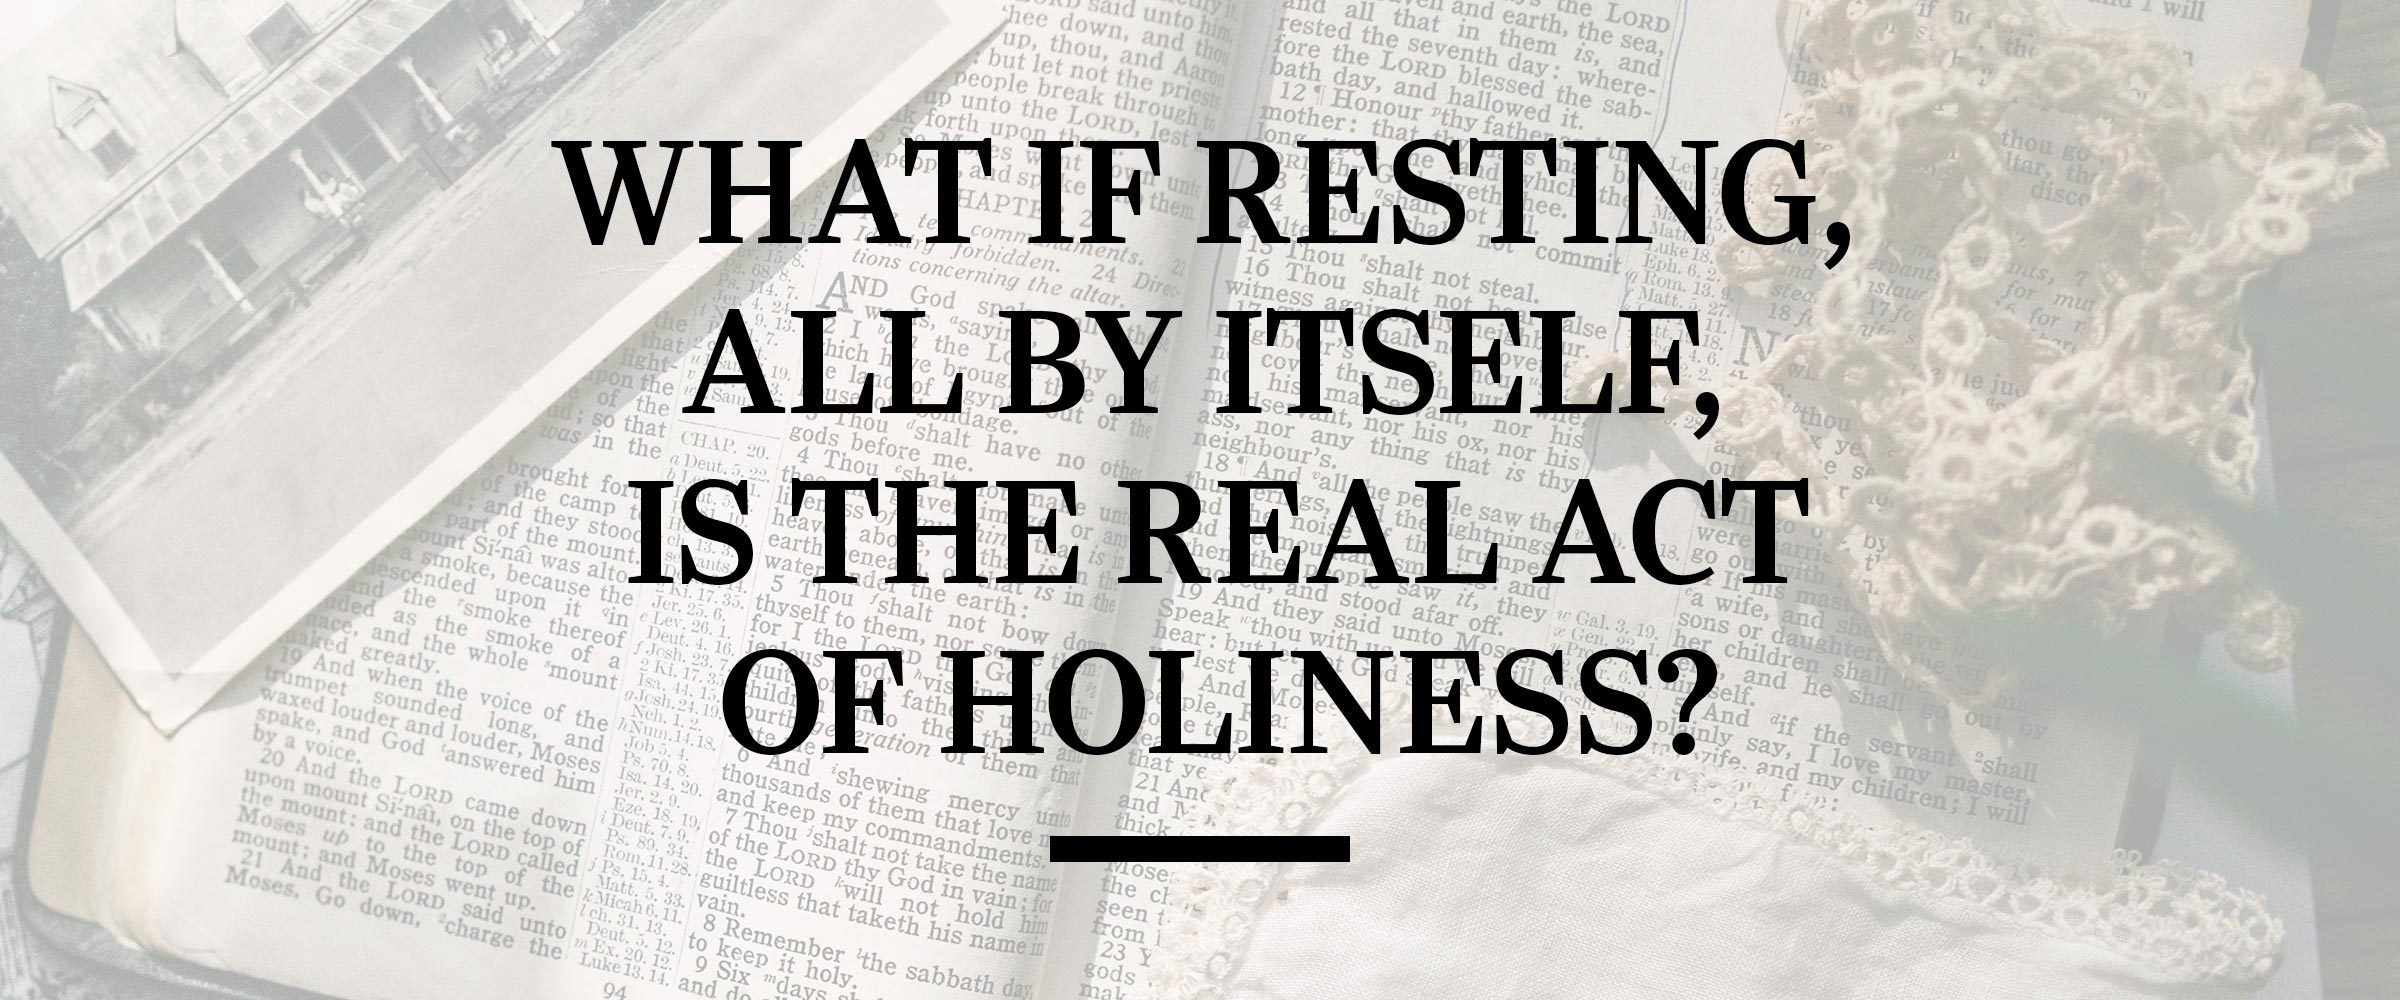 Text: What if resting, all by itself, is the real act of holiness?